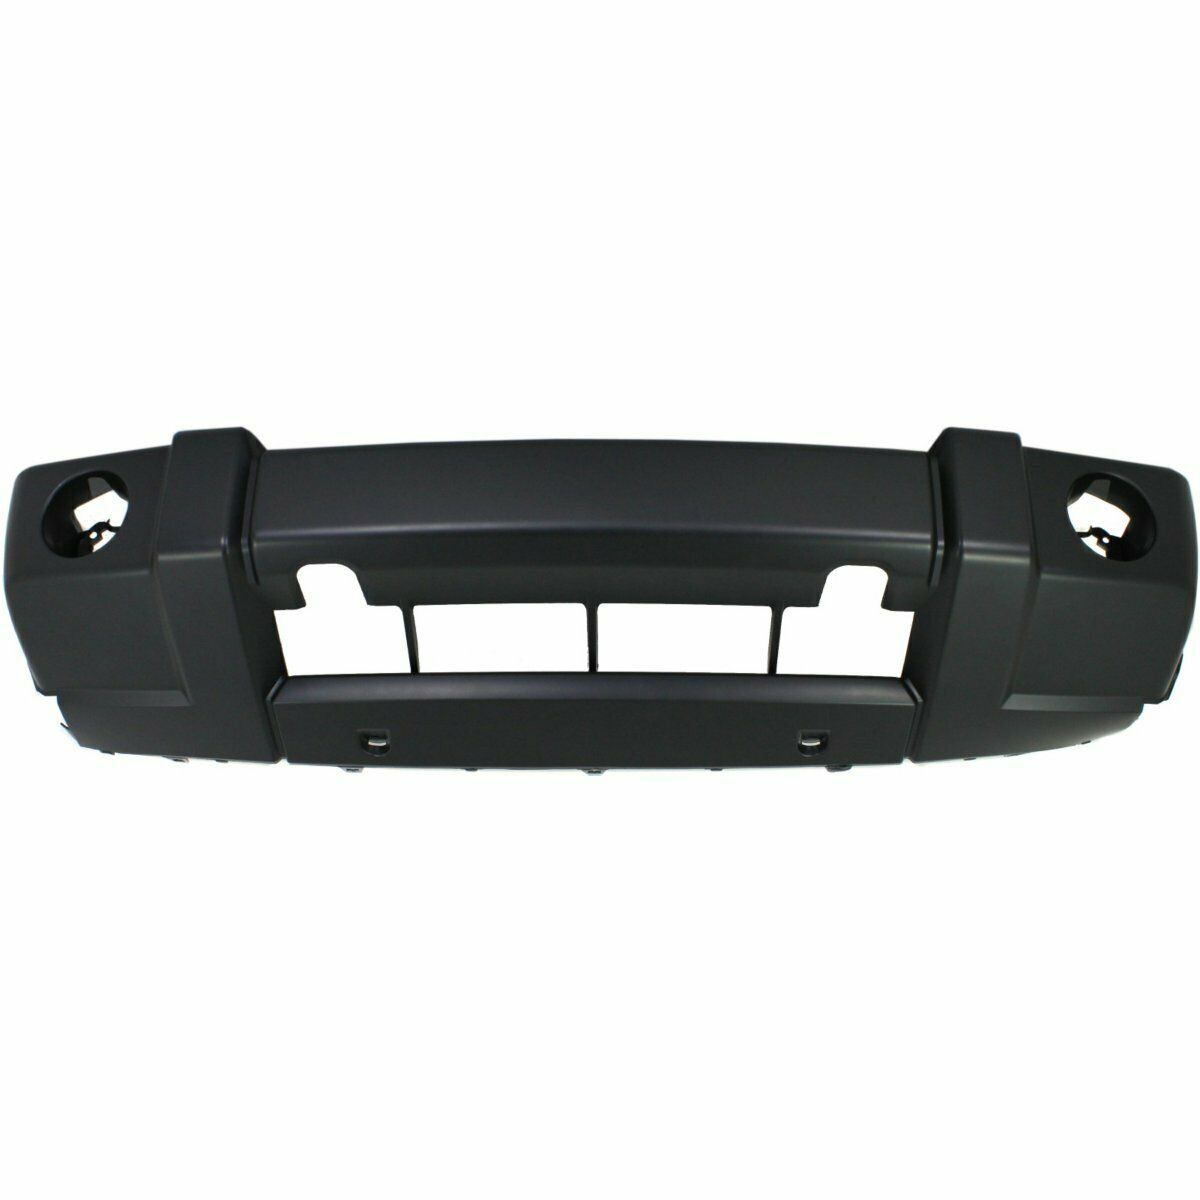 2009-2010 Jeep Commander w/oChrome Front Bumper Painted to Match